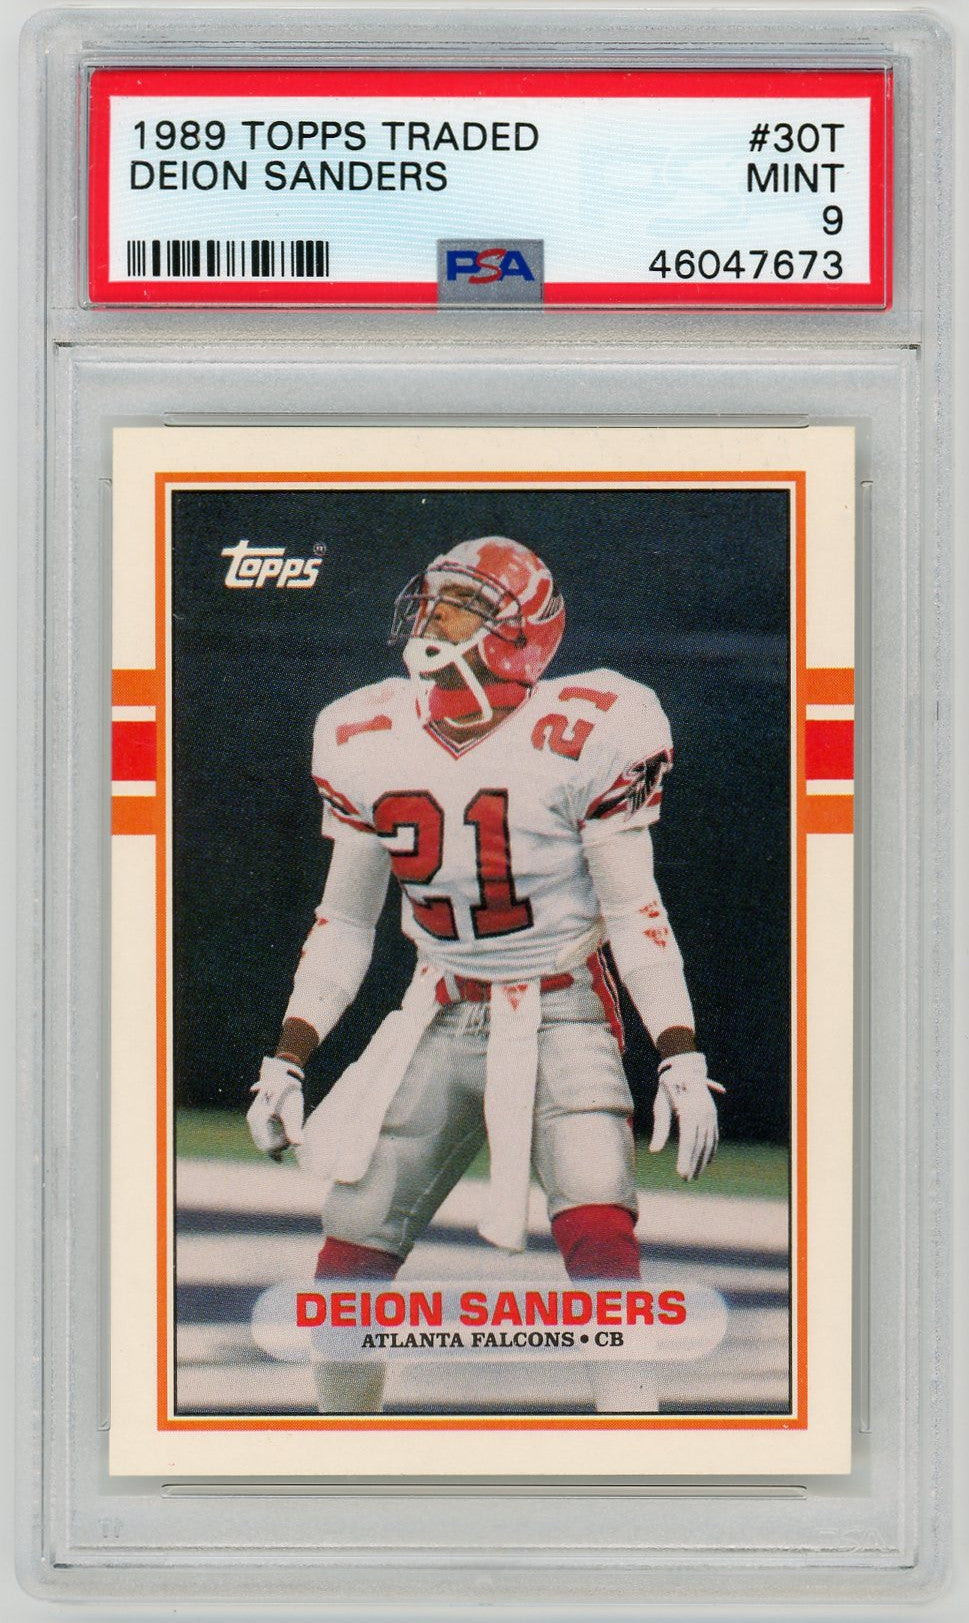 Deion Sanders Atlanta Falcons 1989 Topps Traded Football Rookie Card RC #30T Graded PSA 9 MINT-Powers Sports Memorabilia